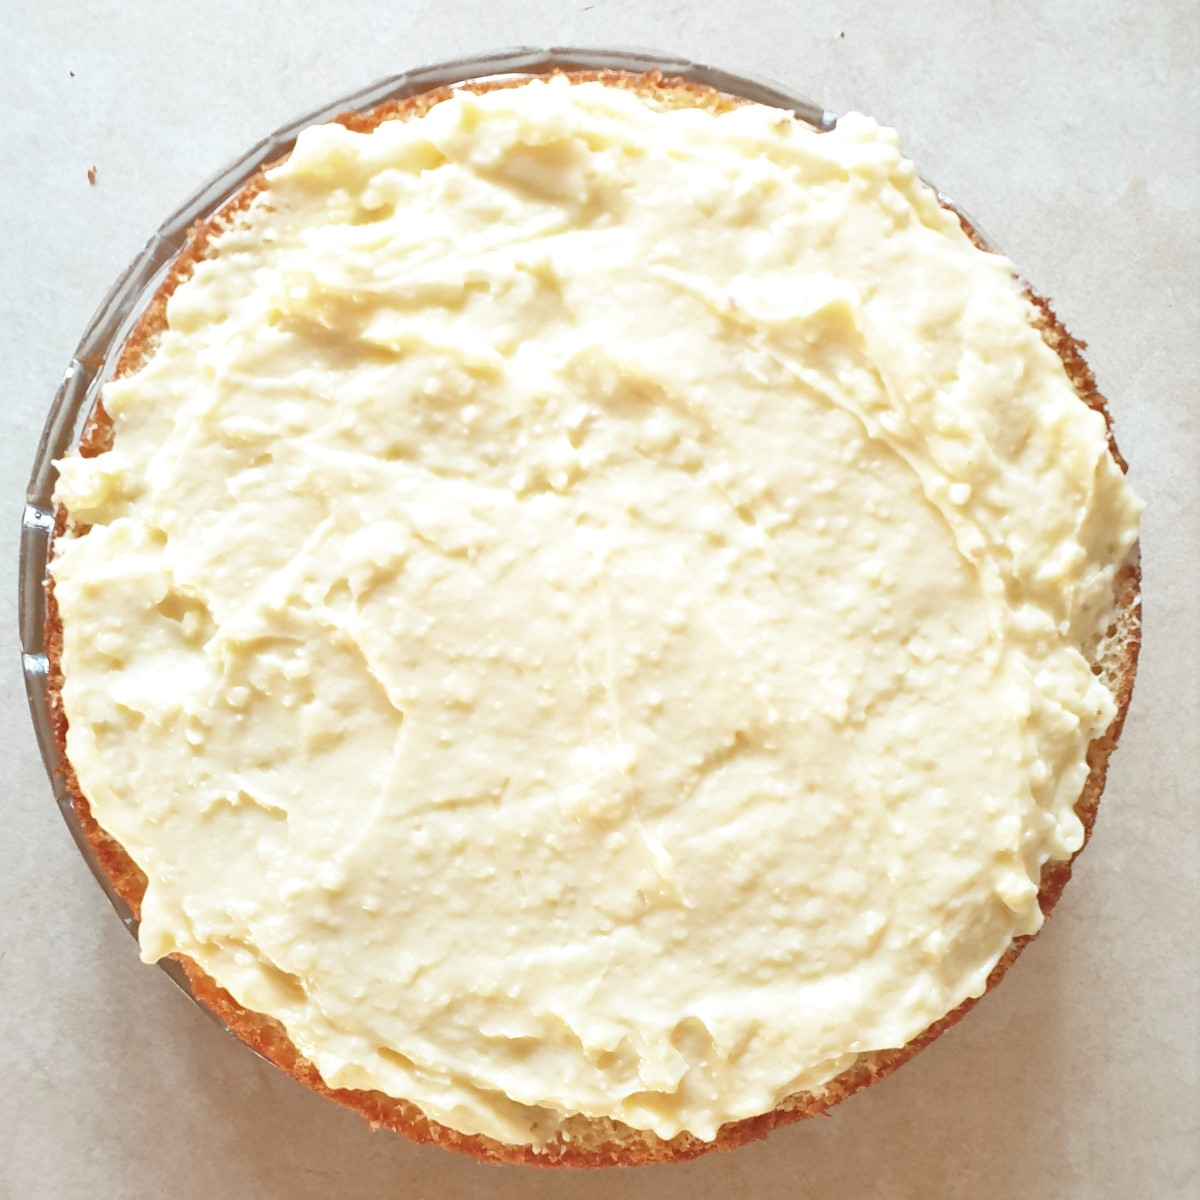 A cake cut in half and spread with creme patissiere